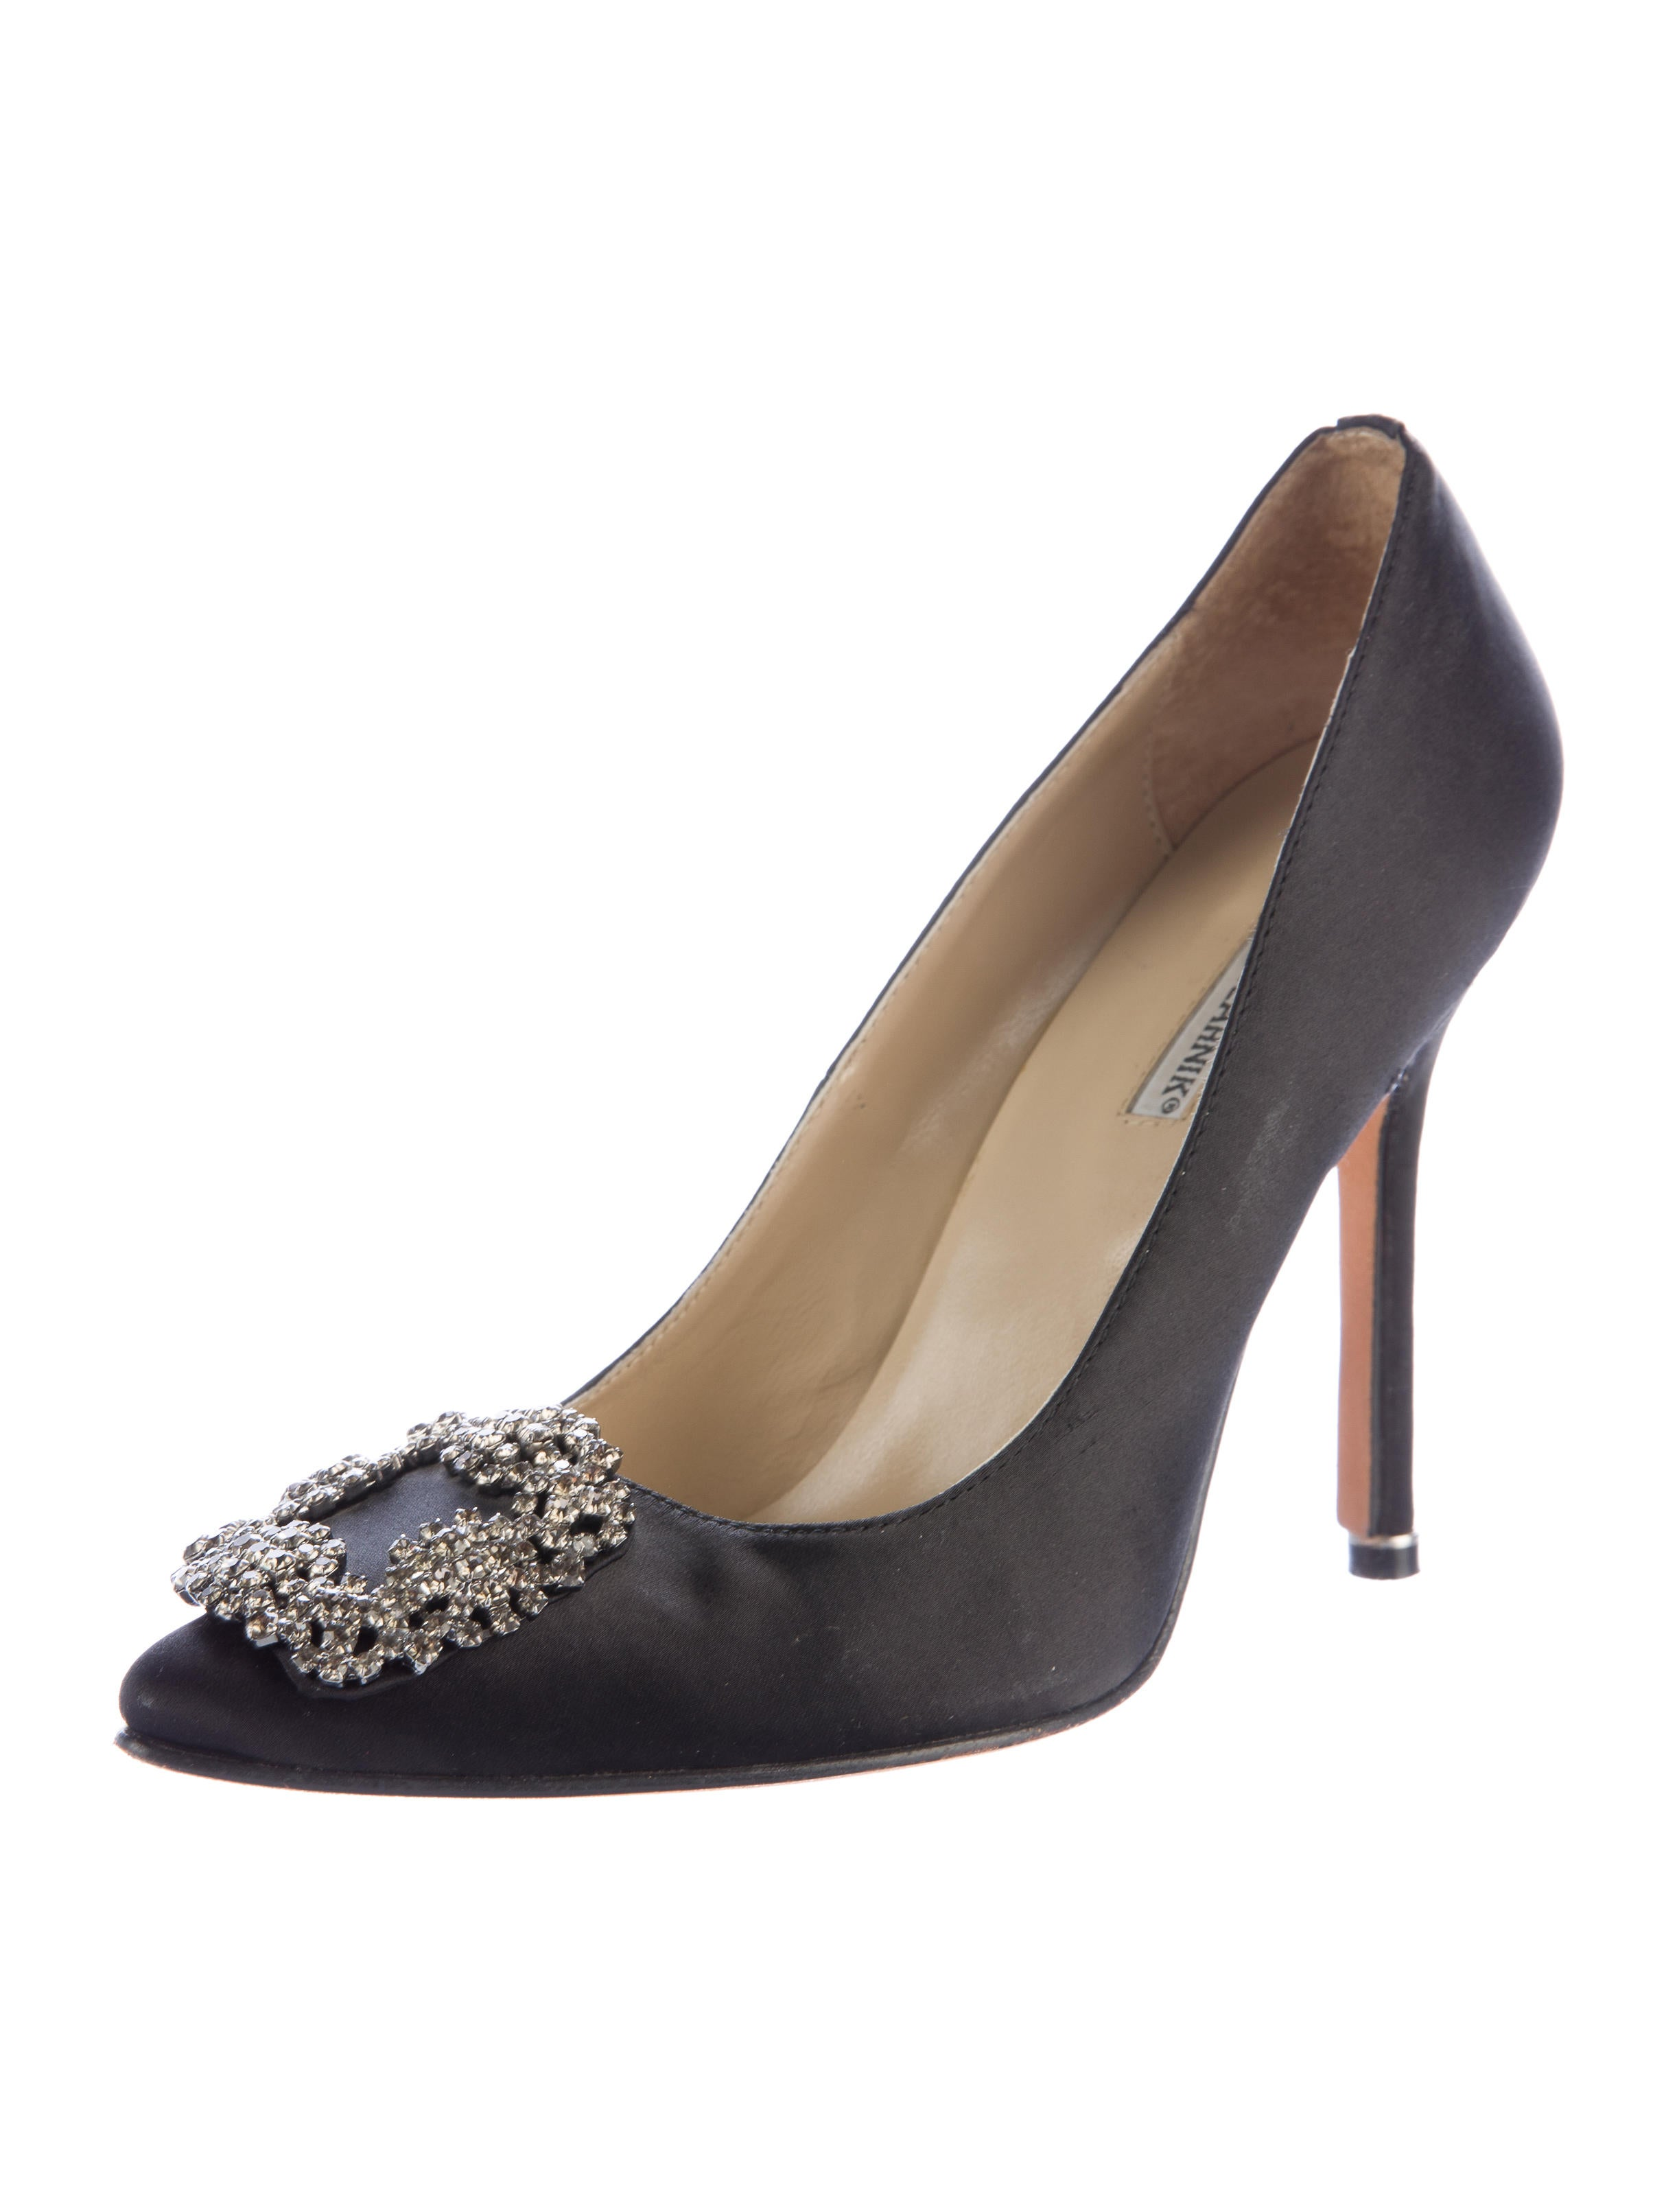 Manolo blahnik satin hangisi pumps shoes moo65006 for Shoes by manolo blahnik